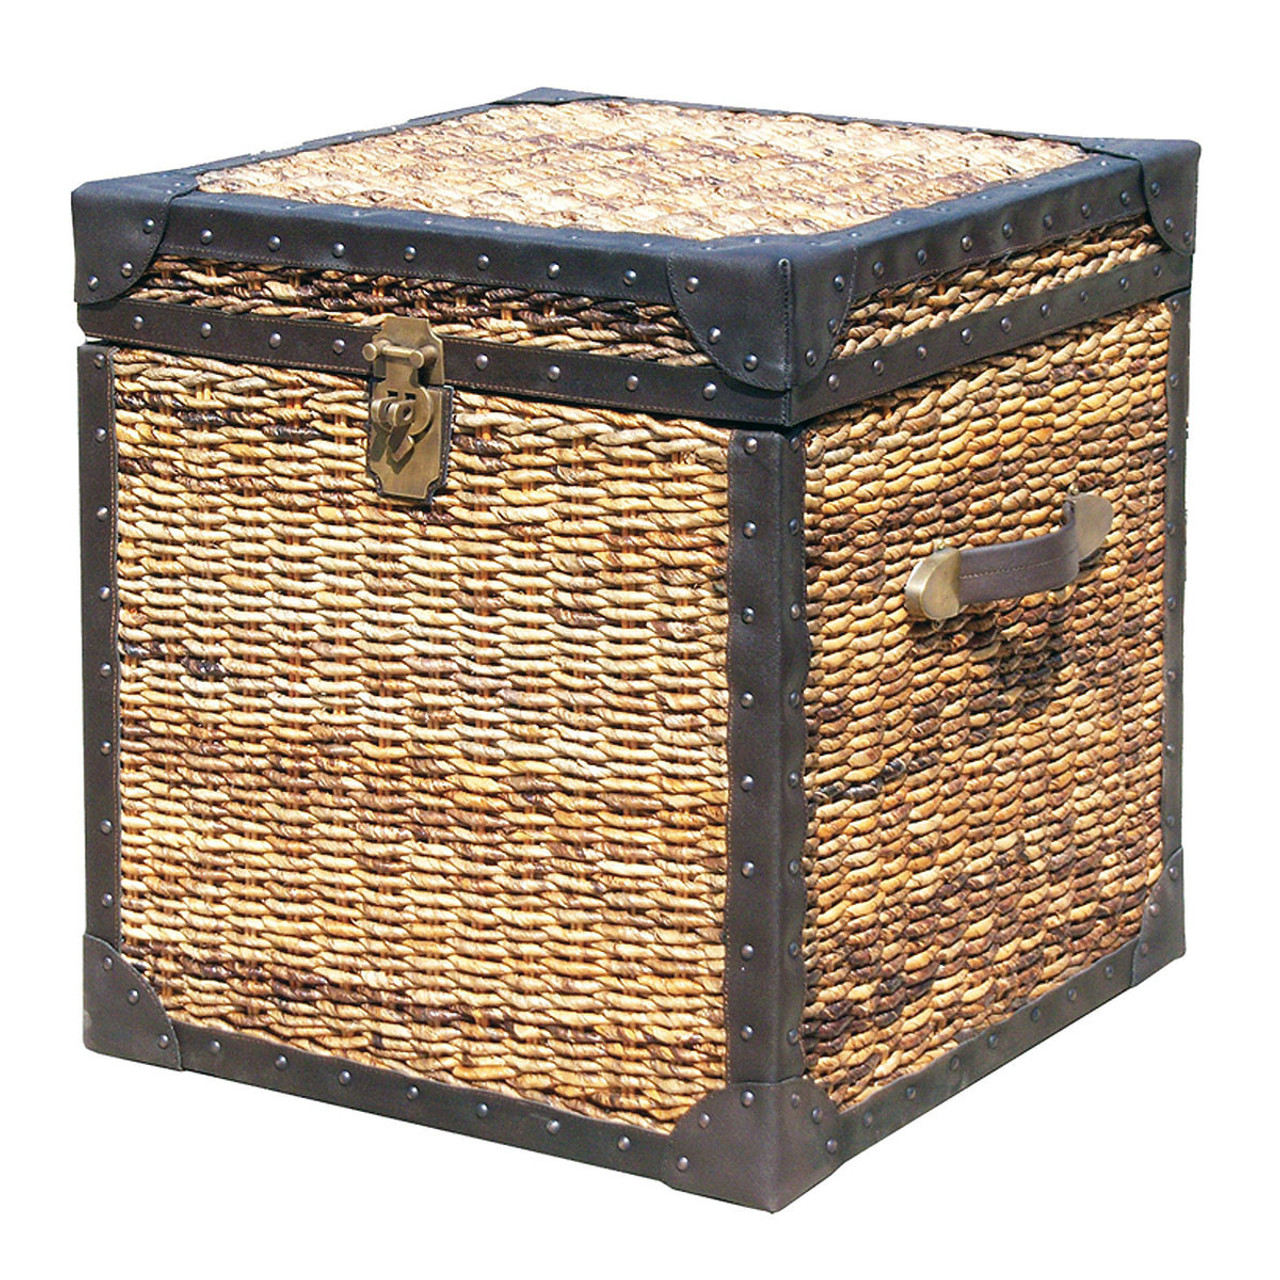 Seagrass Woven Trunk Side Table Lanai Trunk Side Table Zin Home - Woven trunk coffee table